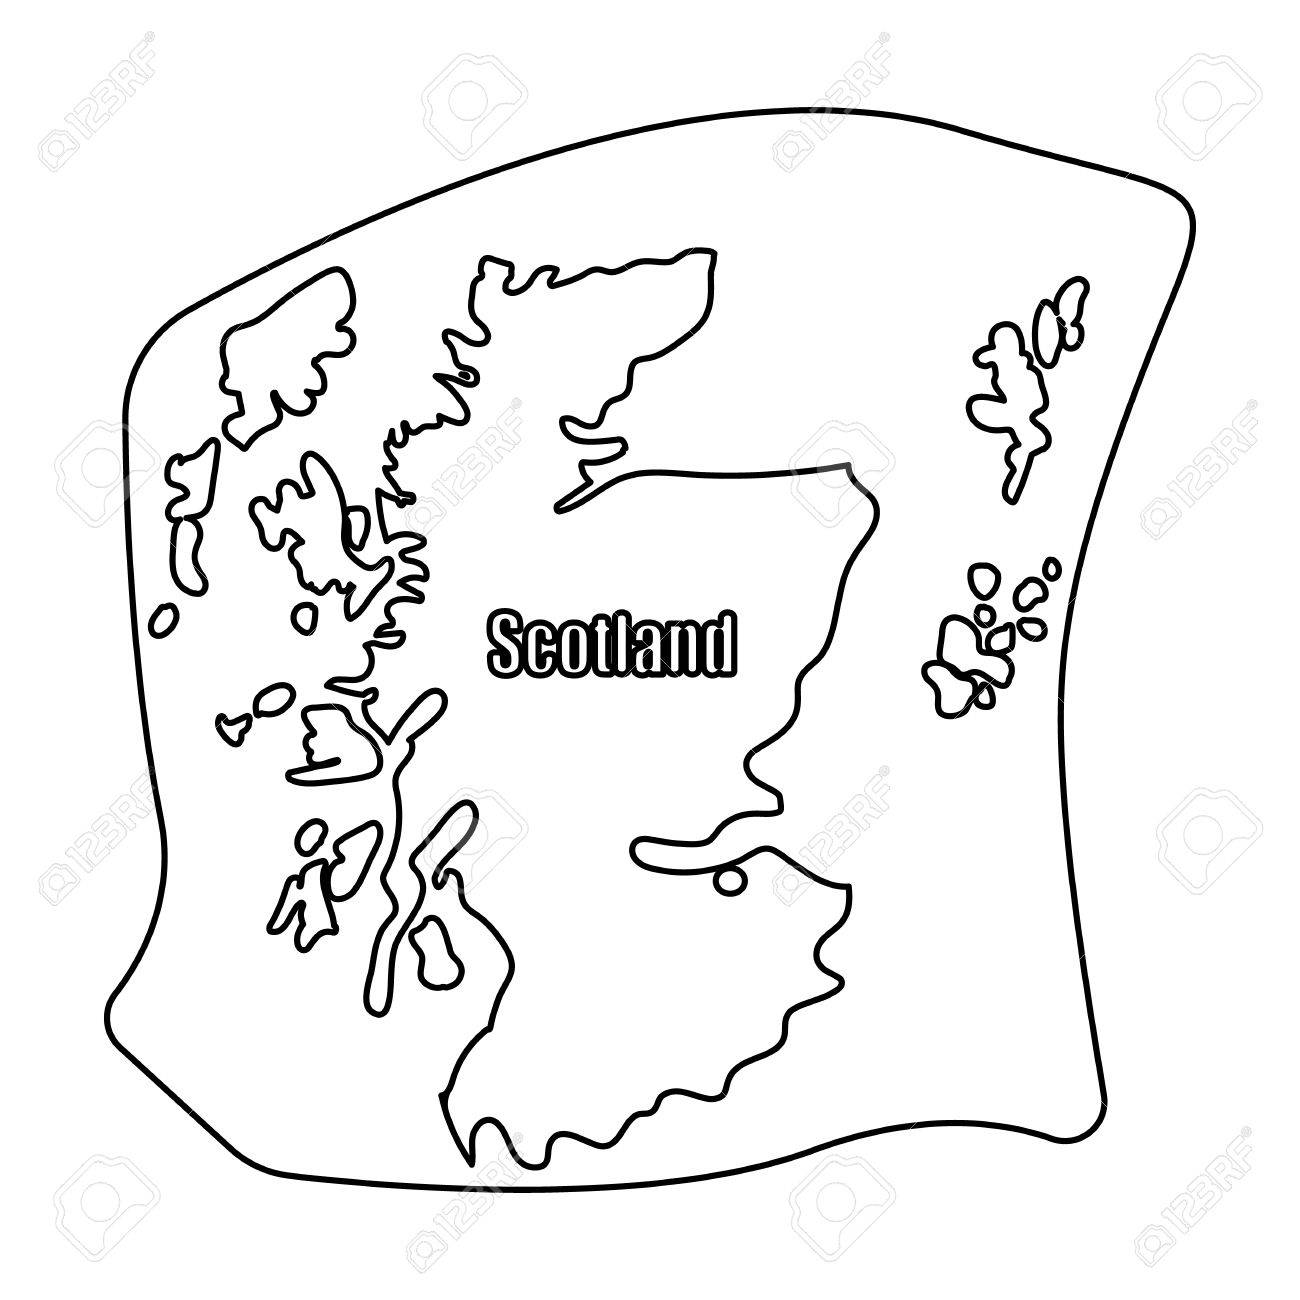 Scotland the mapotland is a country on the world mapotland scotland the mapotland is a country on the world mapotland single icon gumiabroncs